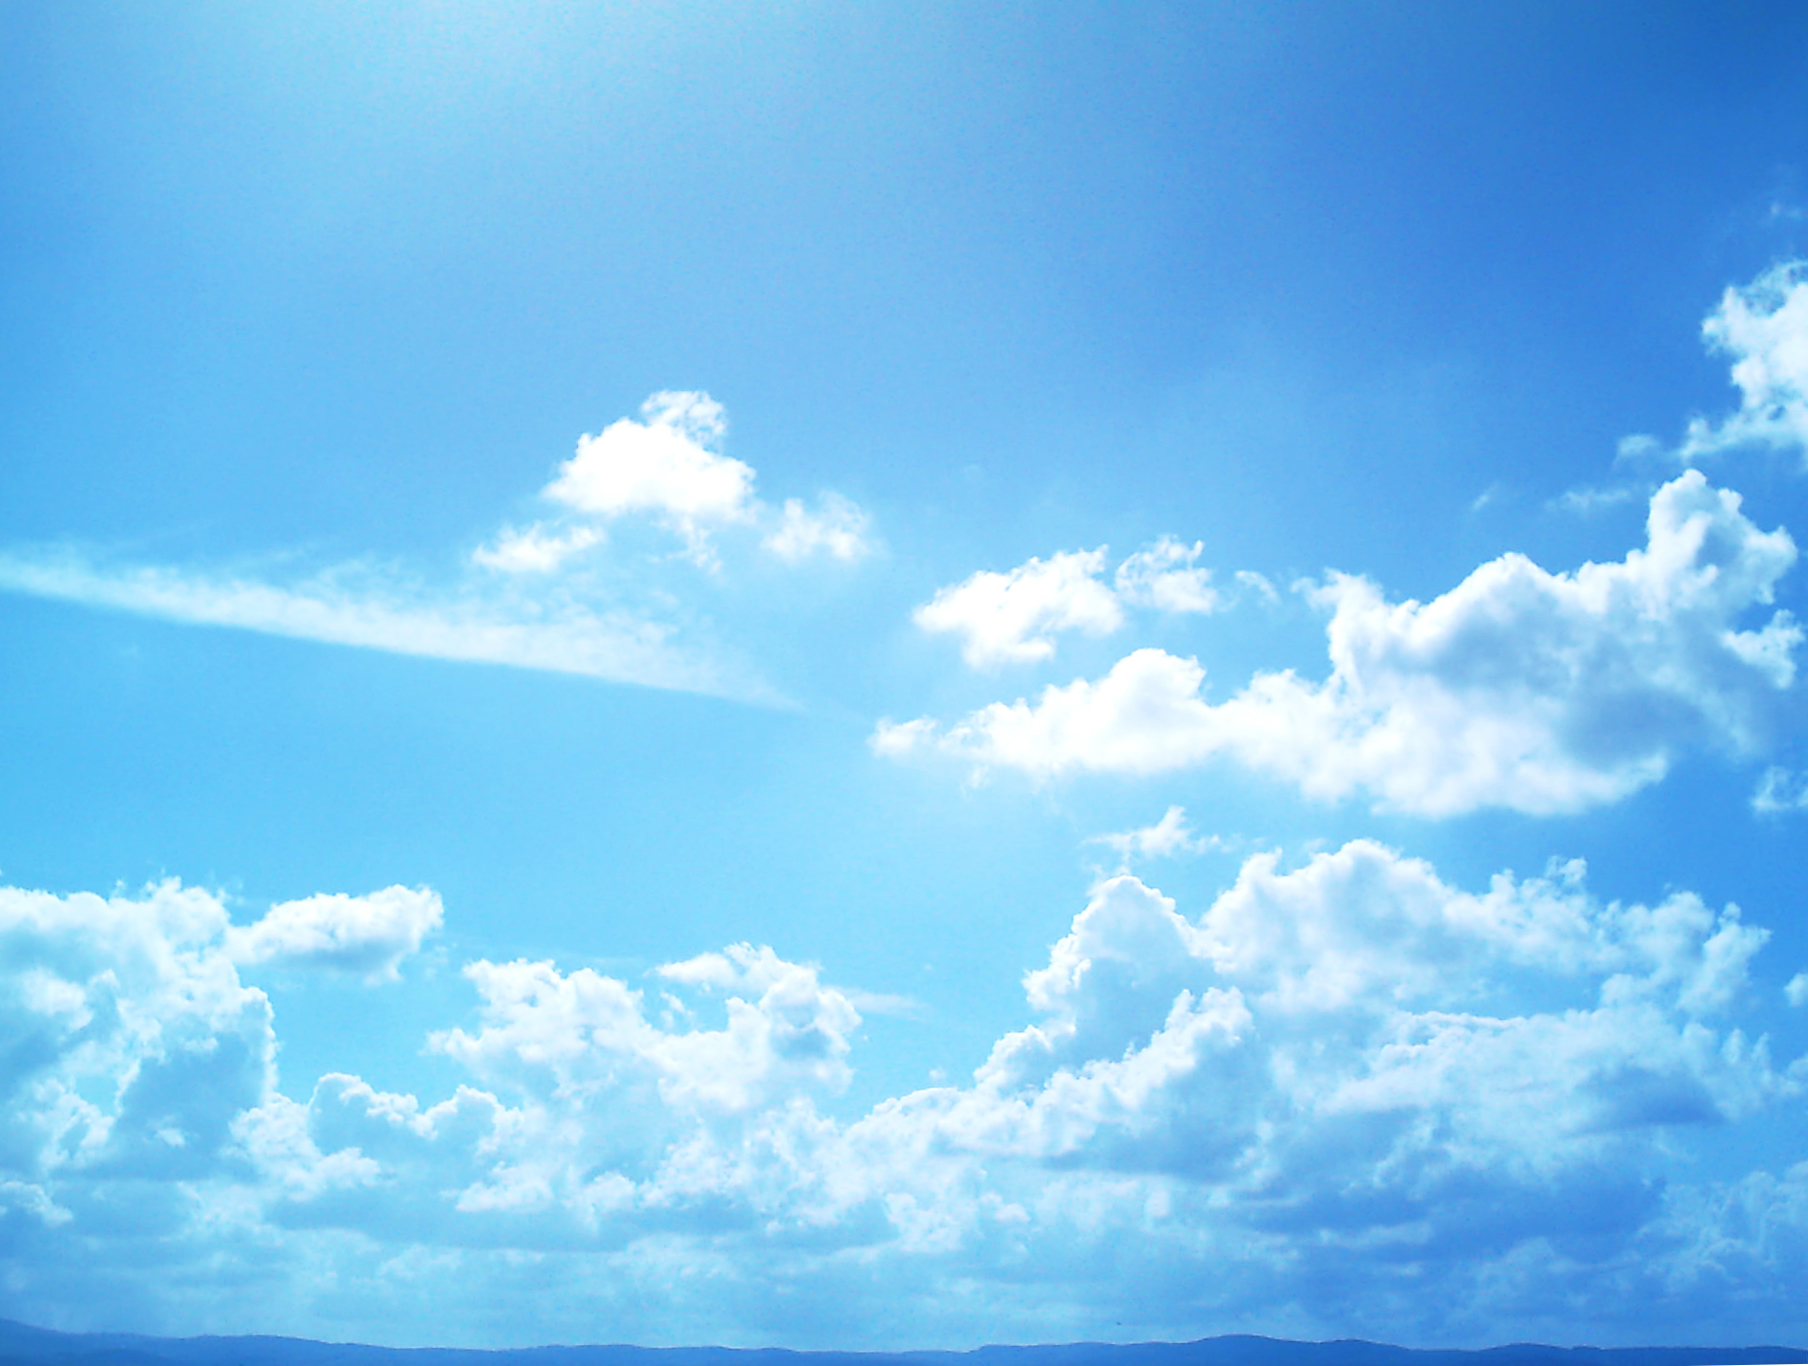 blue-clouds-blue-sky-blue-hills-1399883